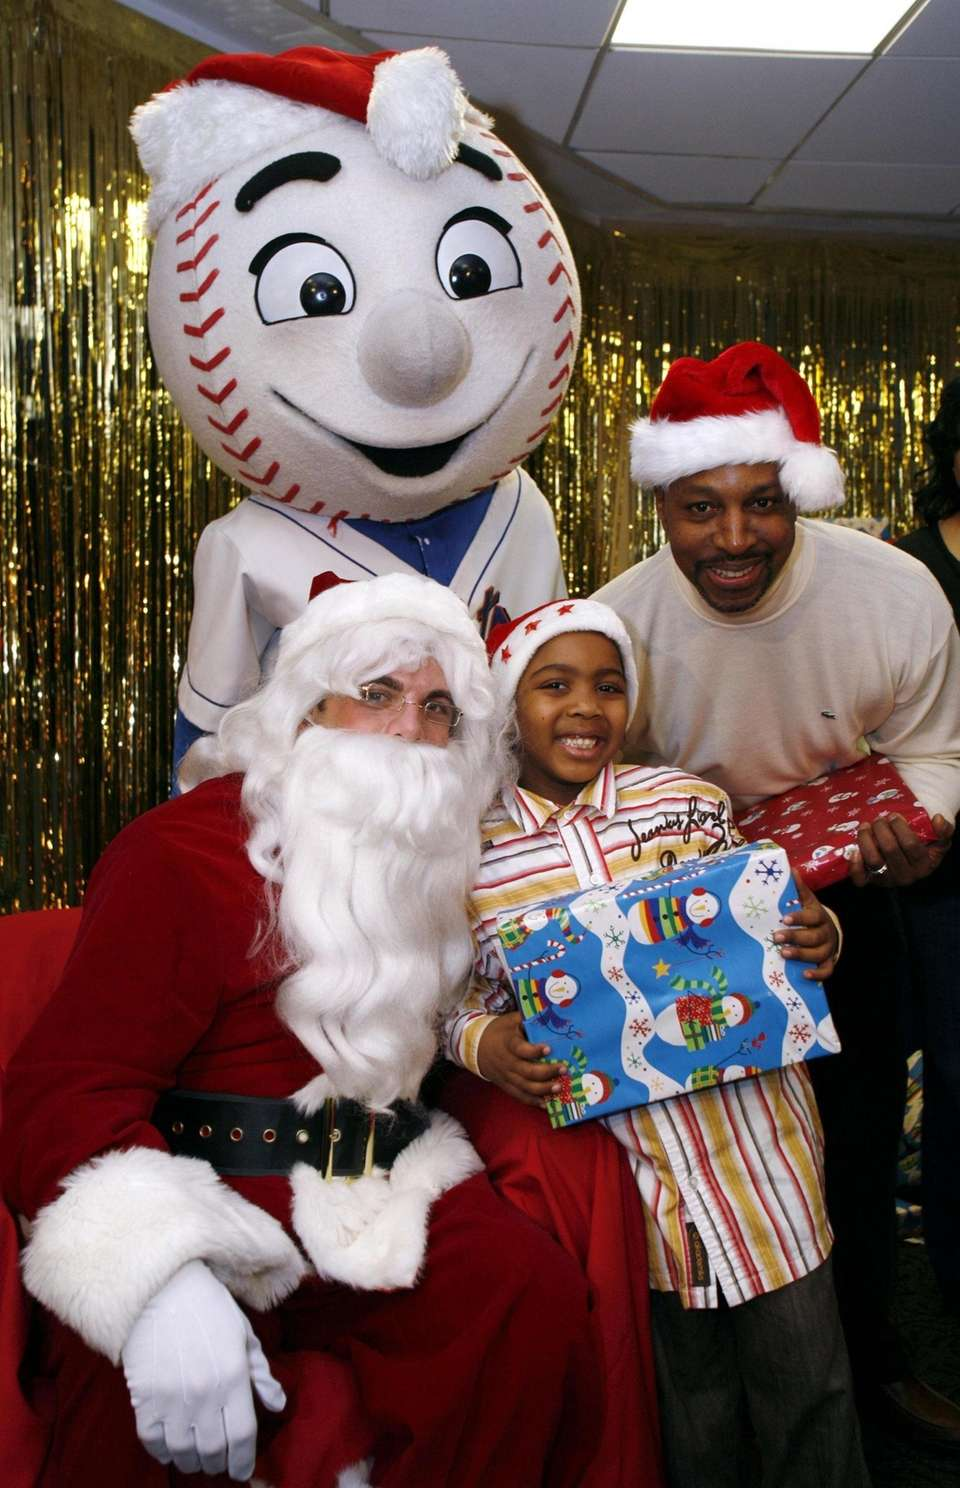 David Wright dresses as Santa Claus at the